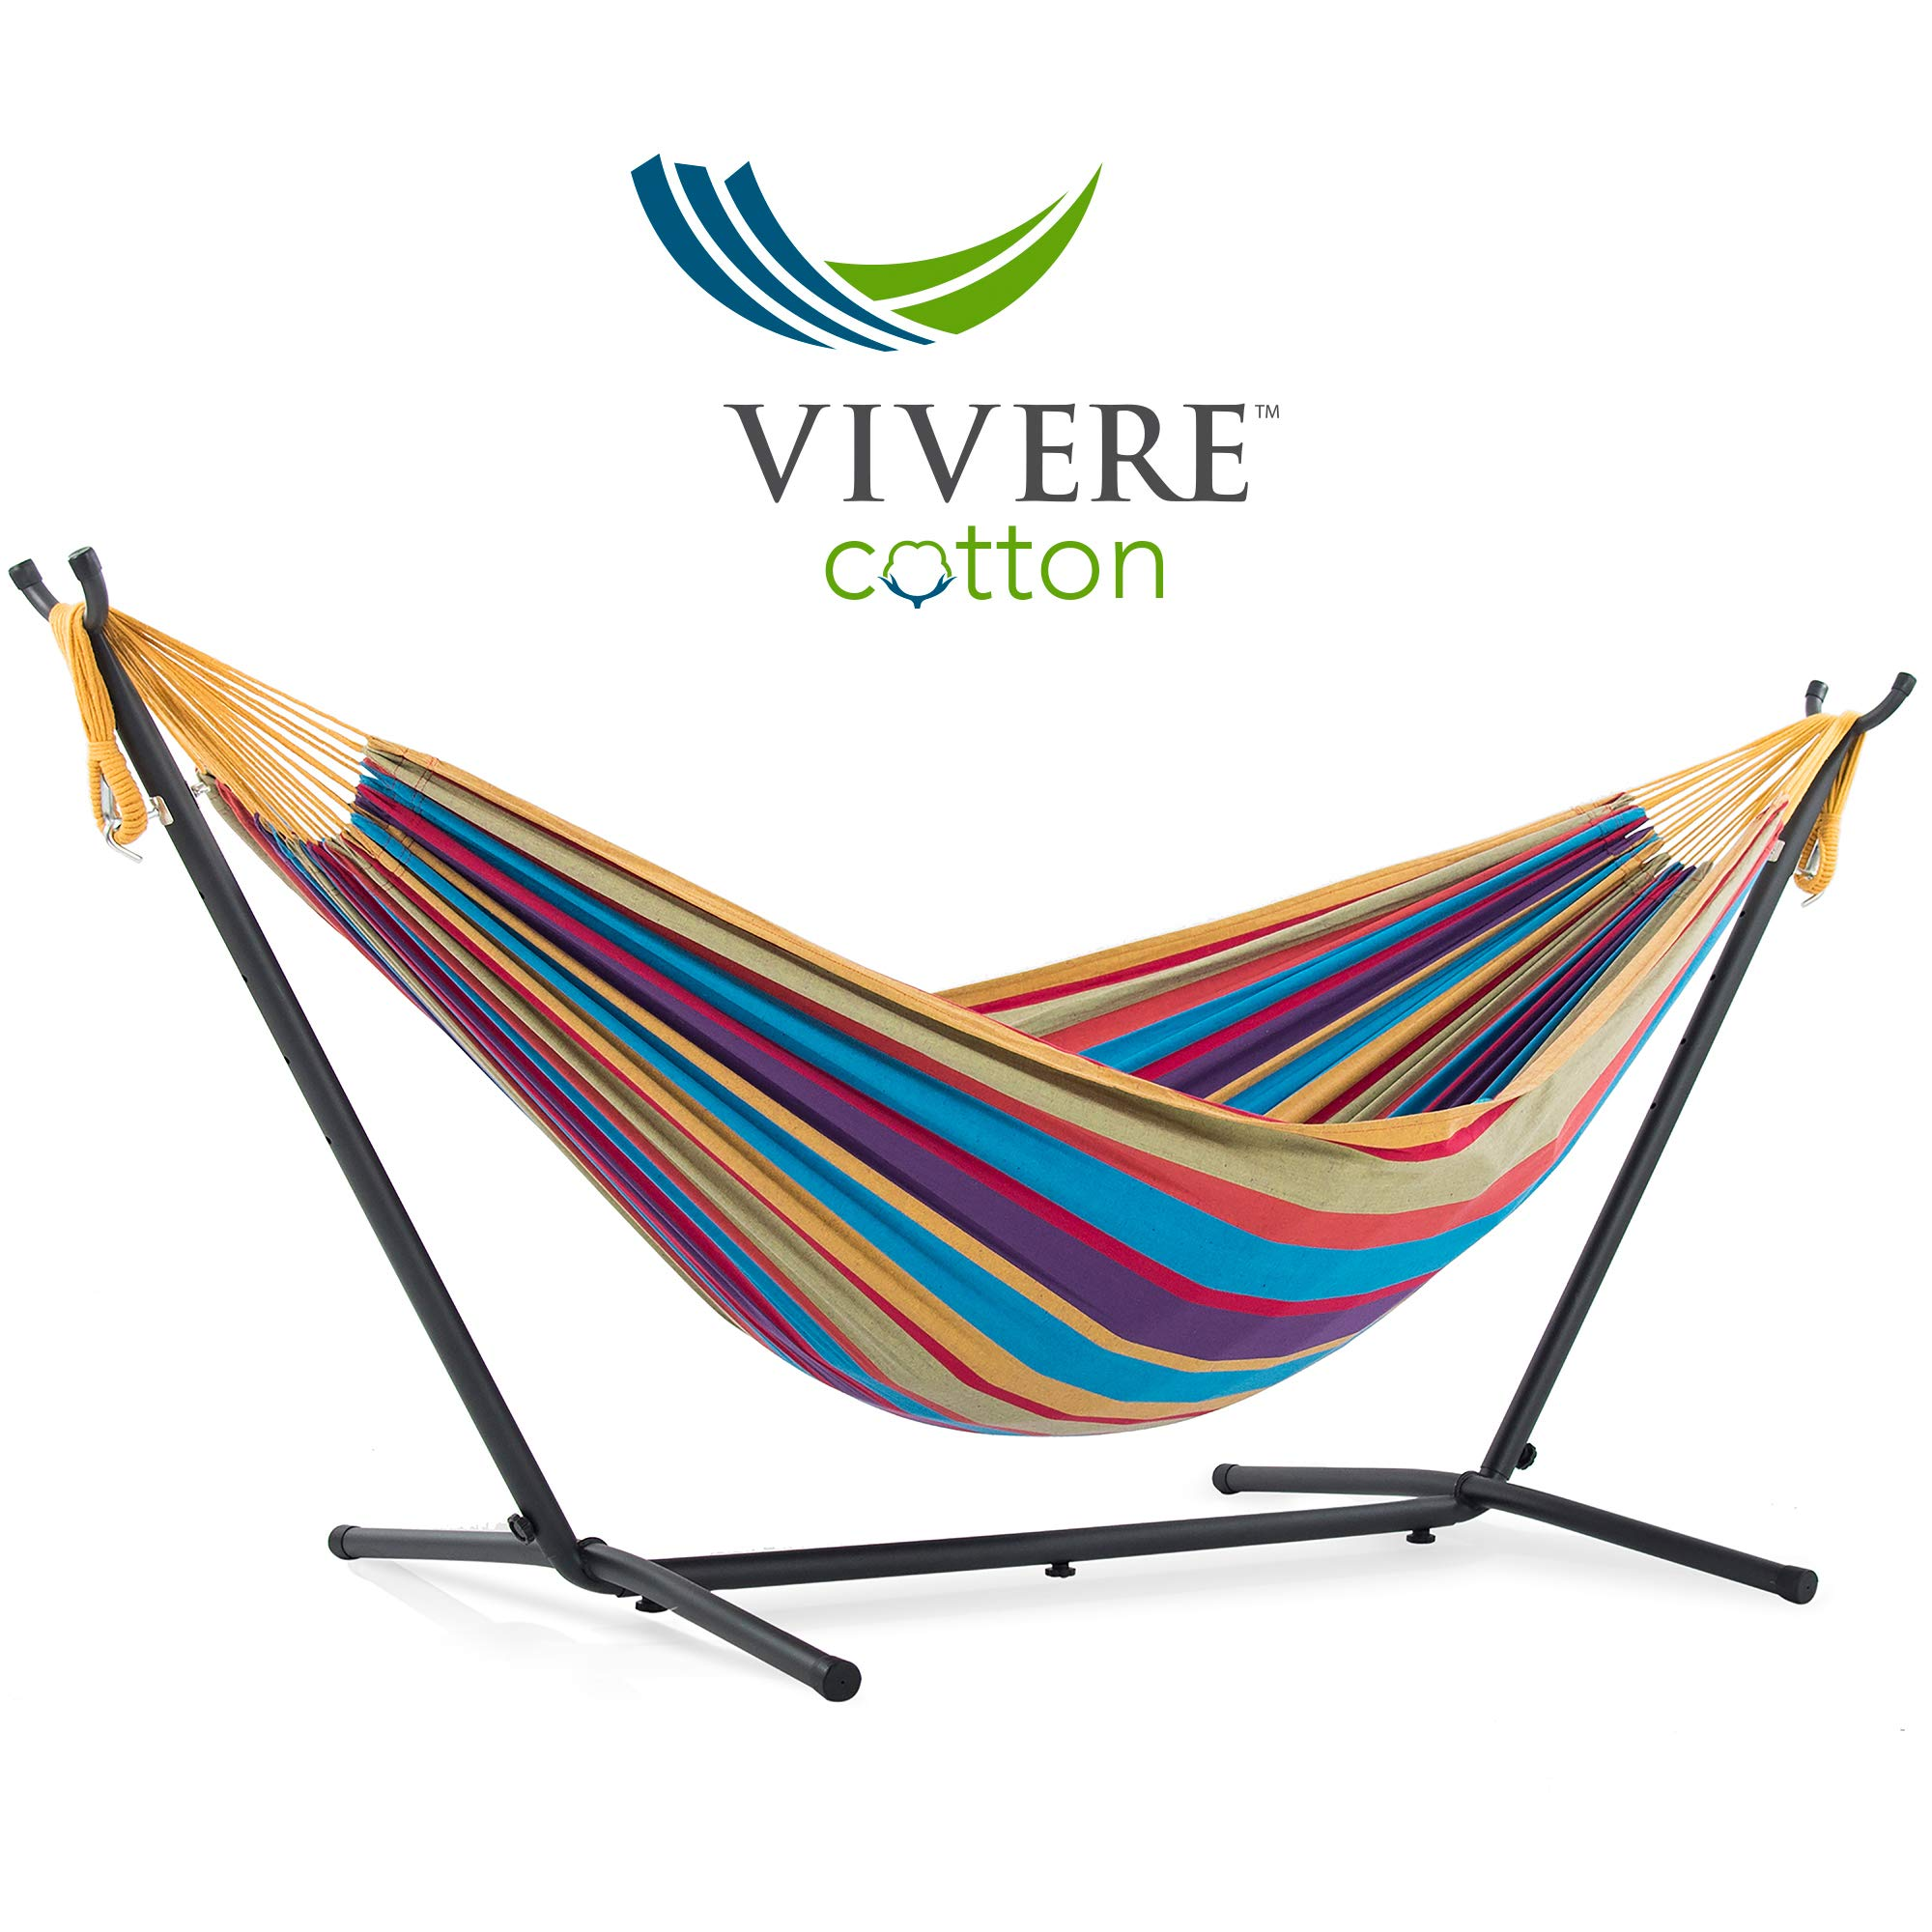 Vivere Double Cotton Hammock with Space Saving Steel Stand, Tropical (450 lb Capacity - Premium Carry Bag Included) by Vivere